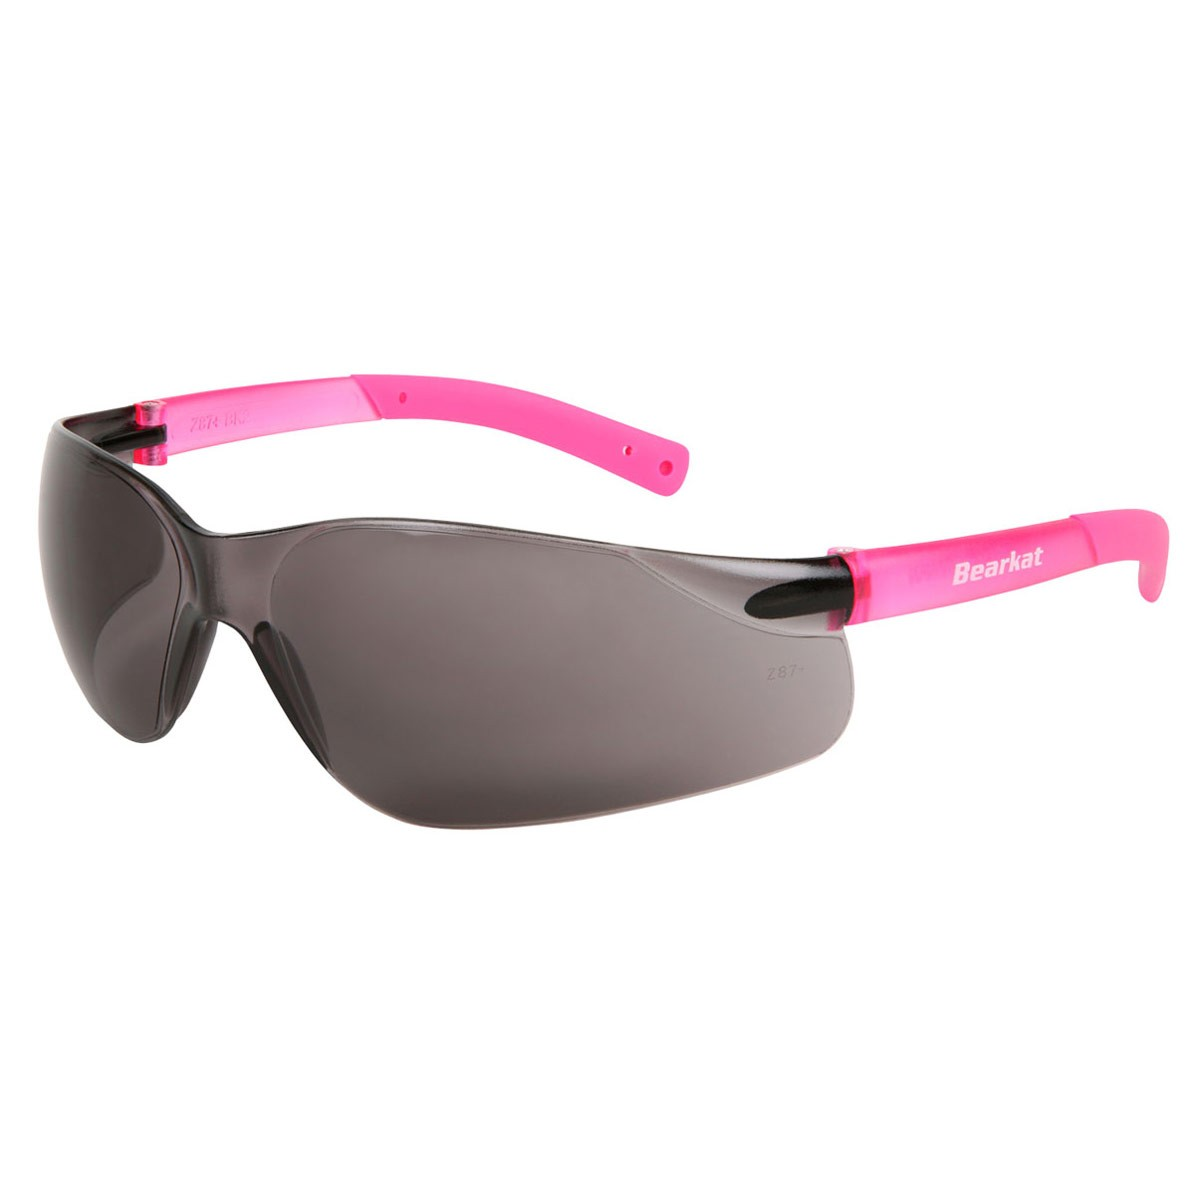 Small BearKat Glasses with Pink Temple & Gray Lenses